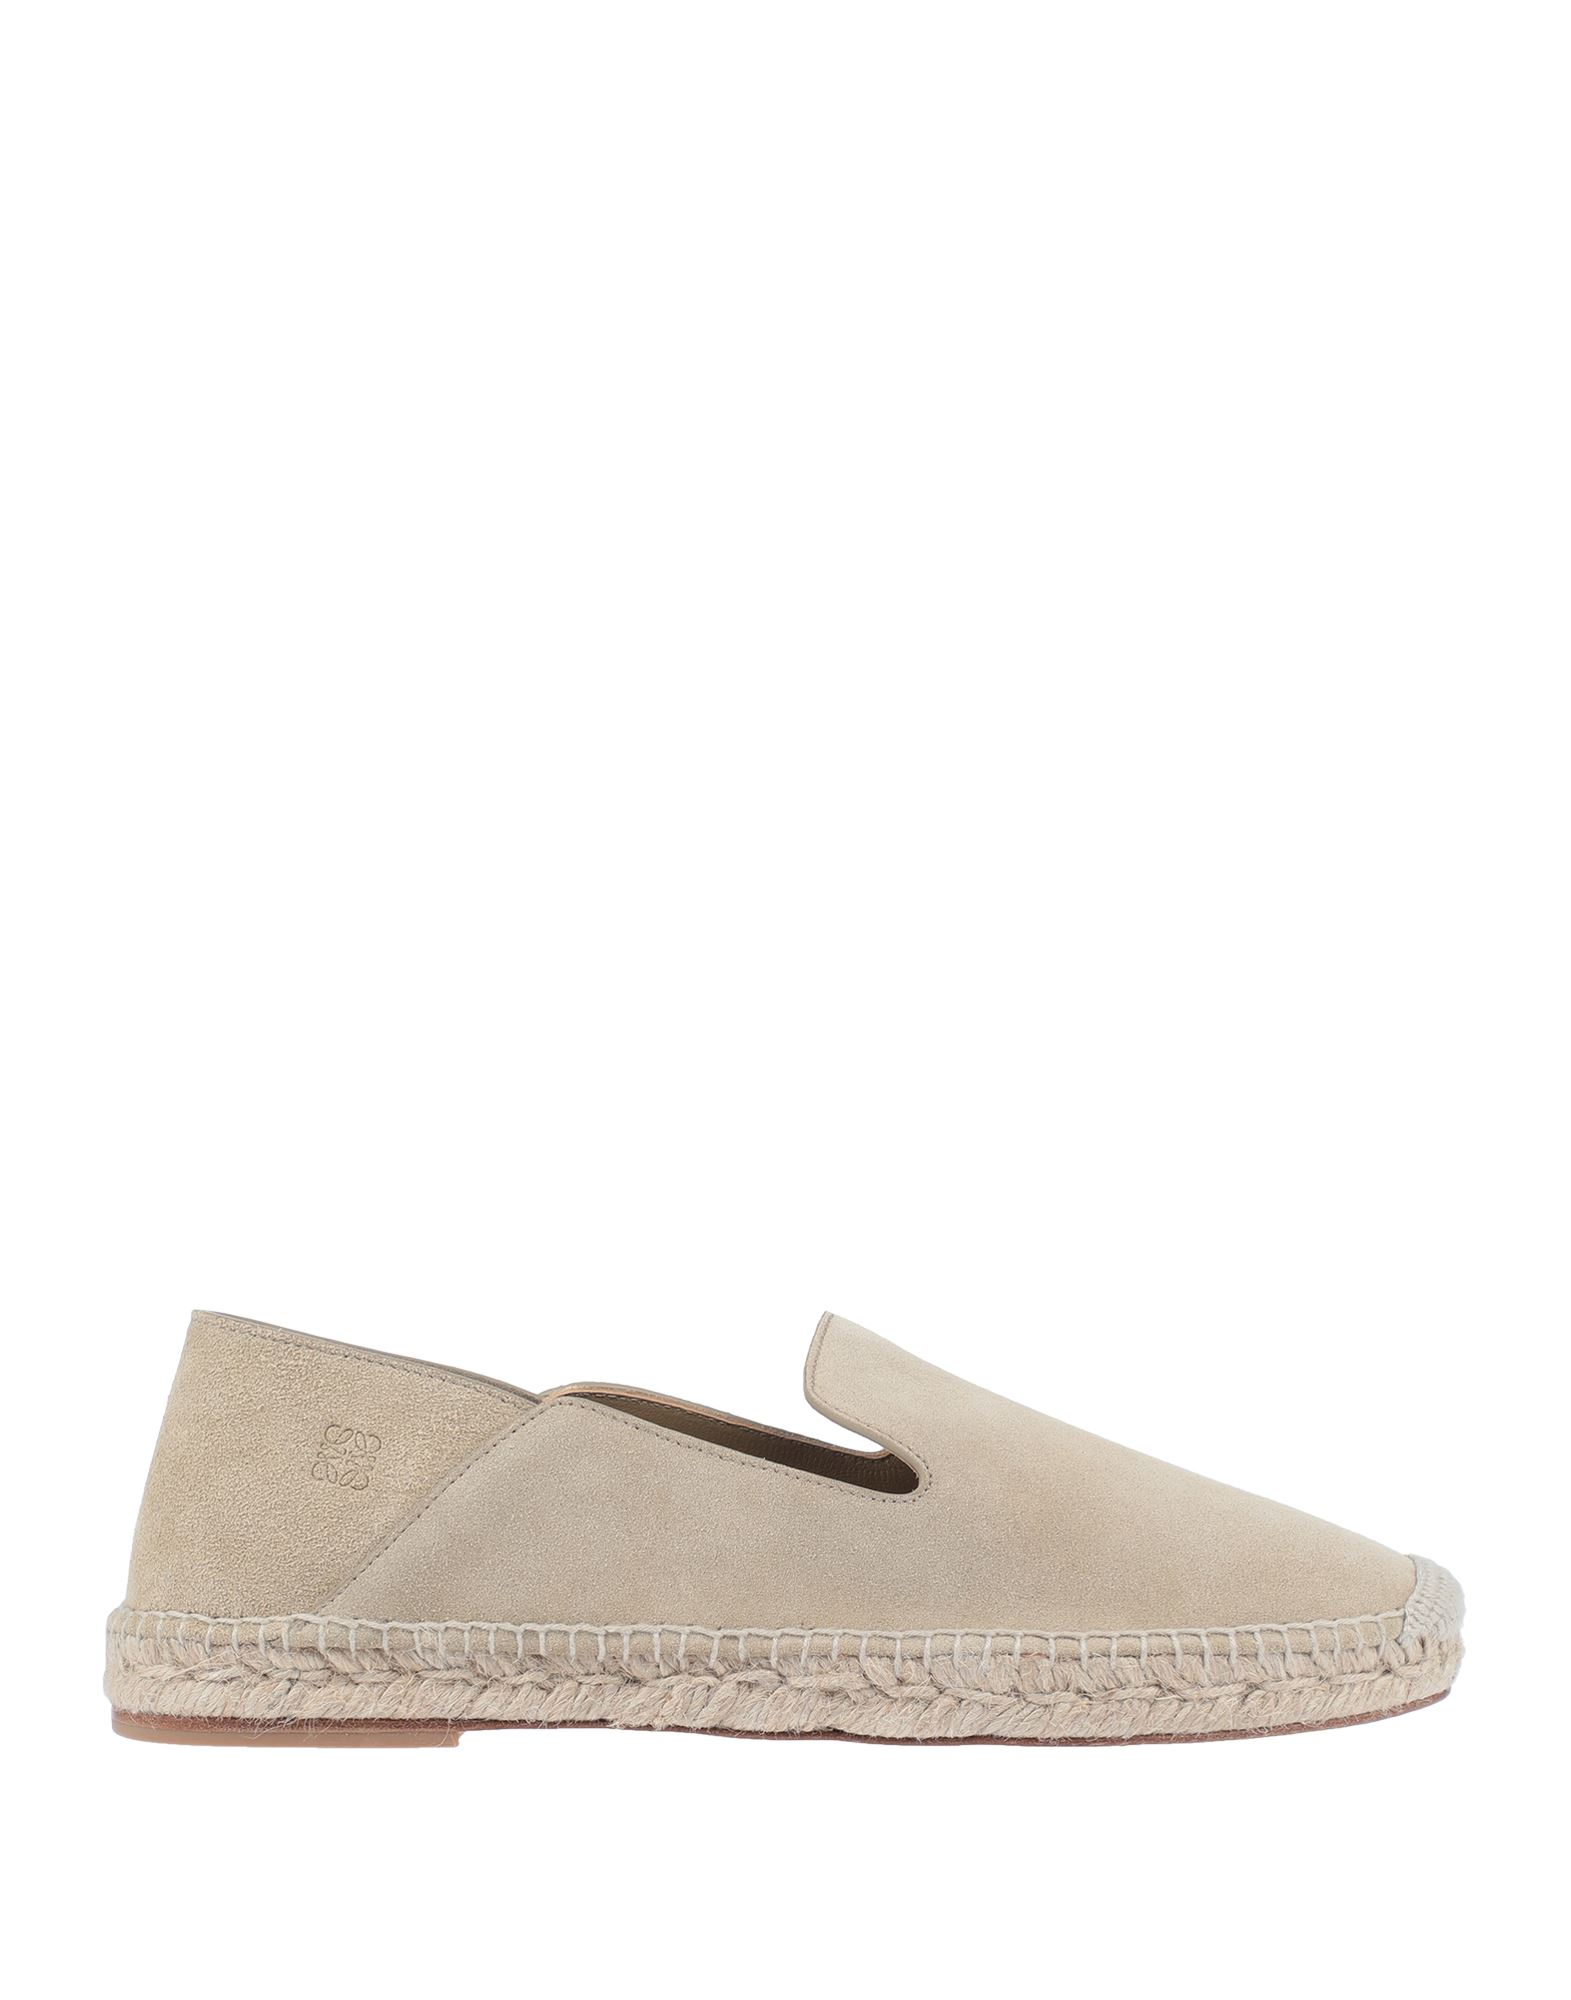 LOEWE Espadrilles. suede effect, logo, solid color, round toeline, flat, leather lining, leather sole, contains non-textile parts of animal origin. Soft Leather